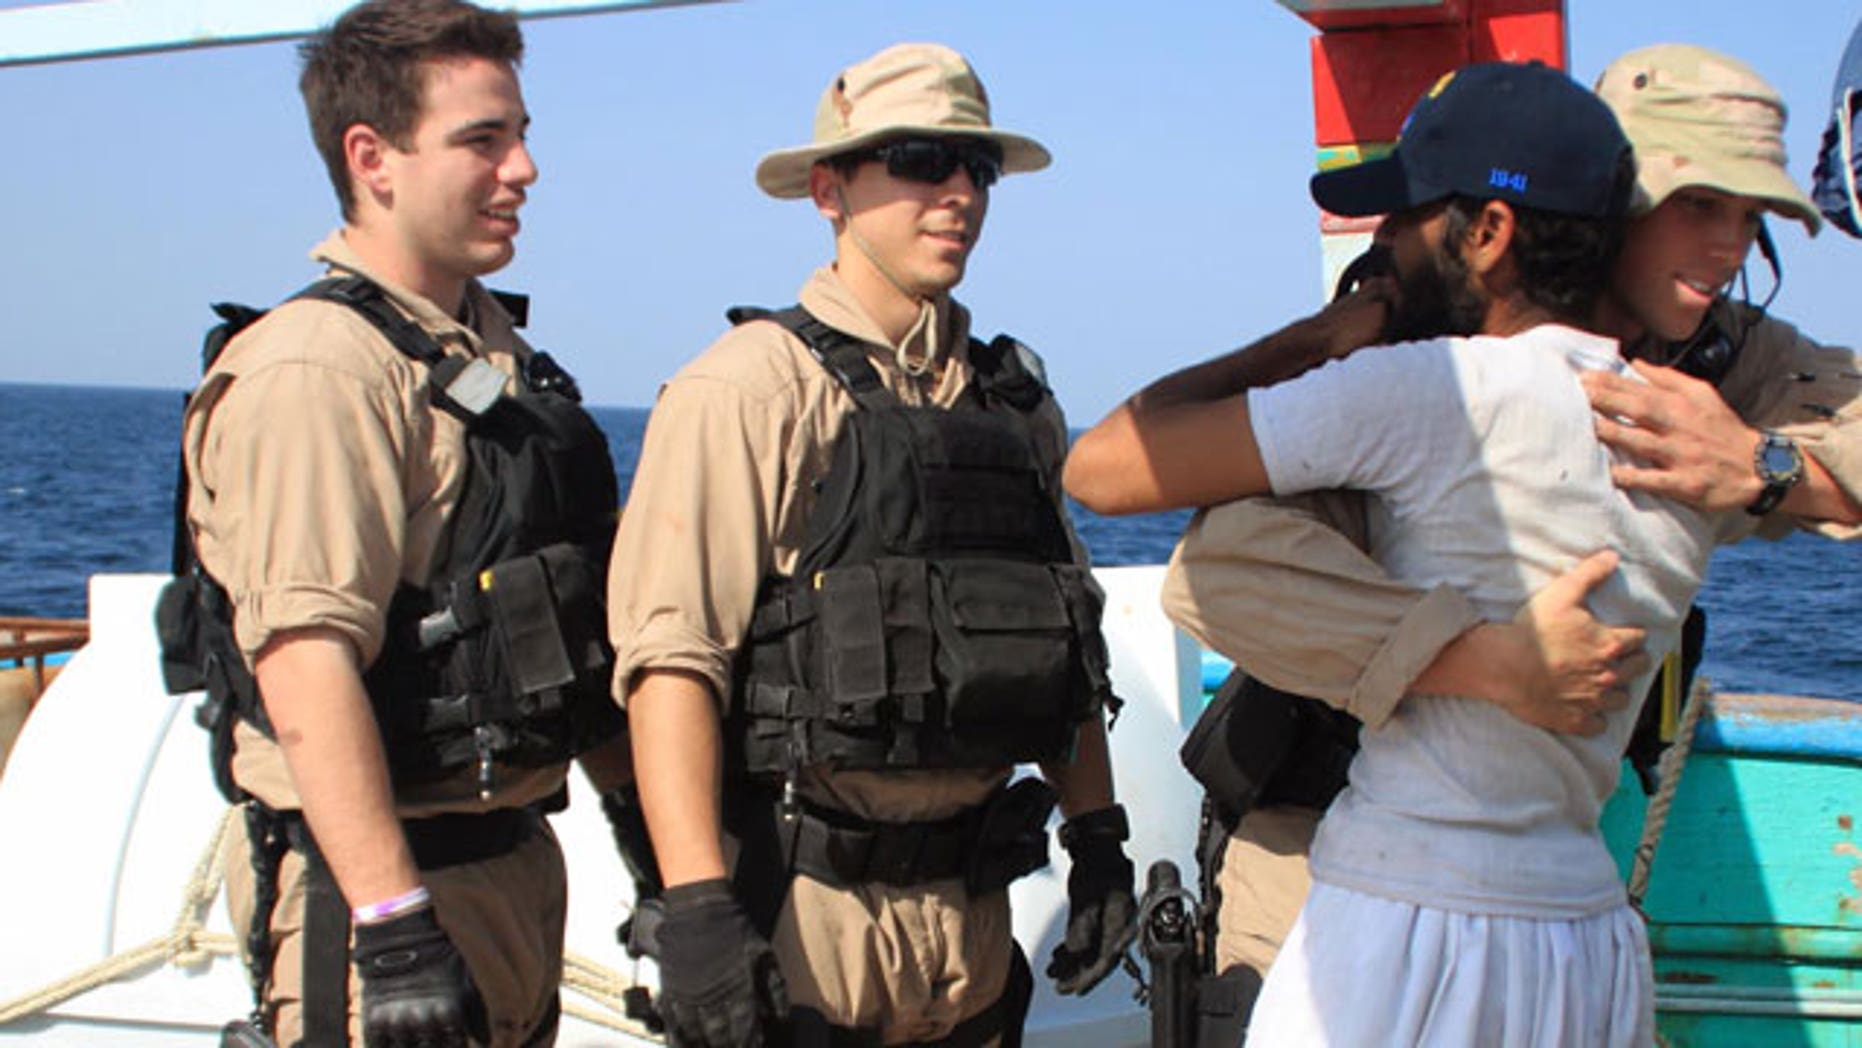 January 6, 2012: U.S. Navy sailors assigned to the guided-missile destroyer USS Kidd greet a crew member of the Iranian fishing vessel, the Al Molai Fin the Arabian Sea.